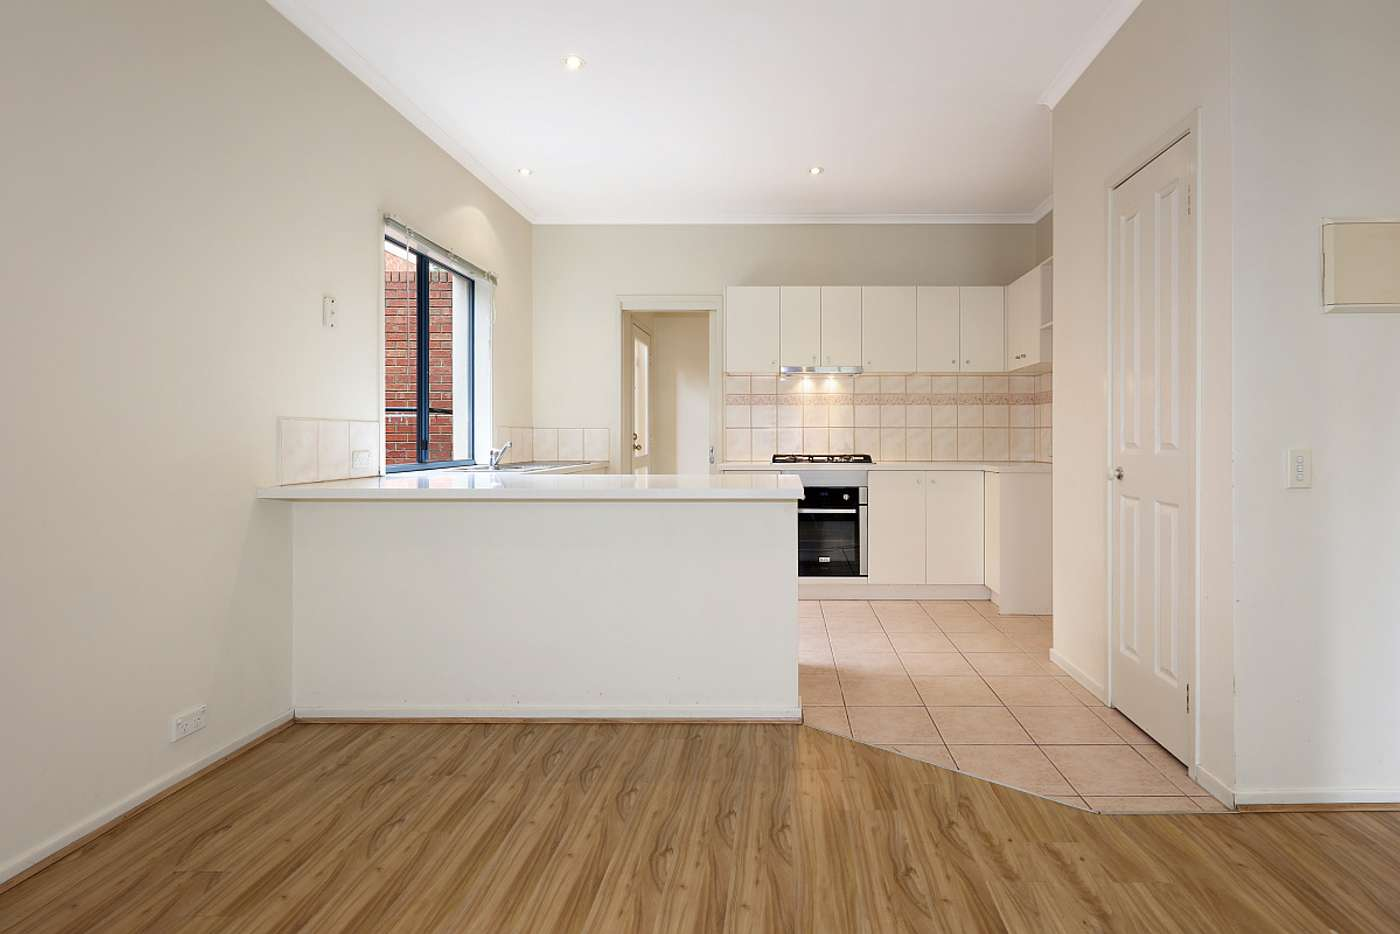 Fifth view of Homely townhouse listing, 19/745 Burwood Road, Hawthorn East VIC 3123